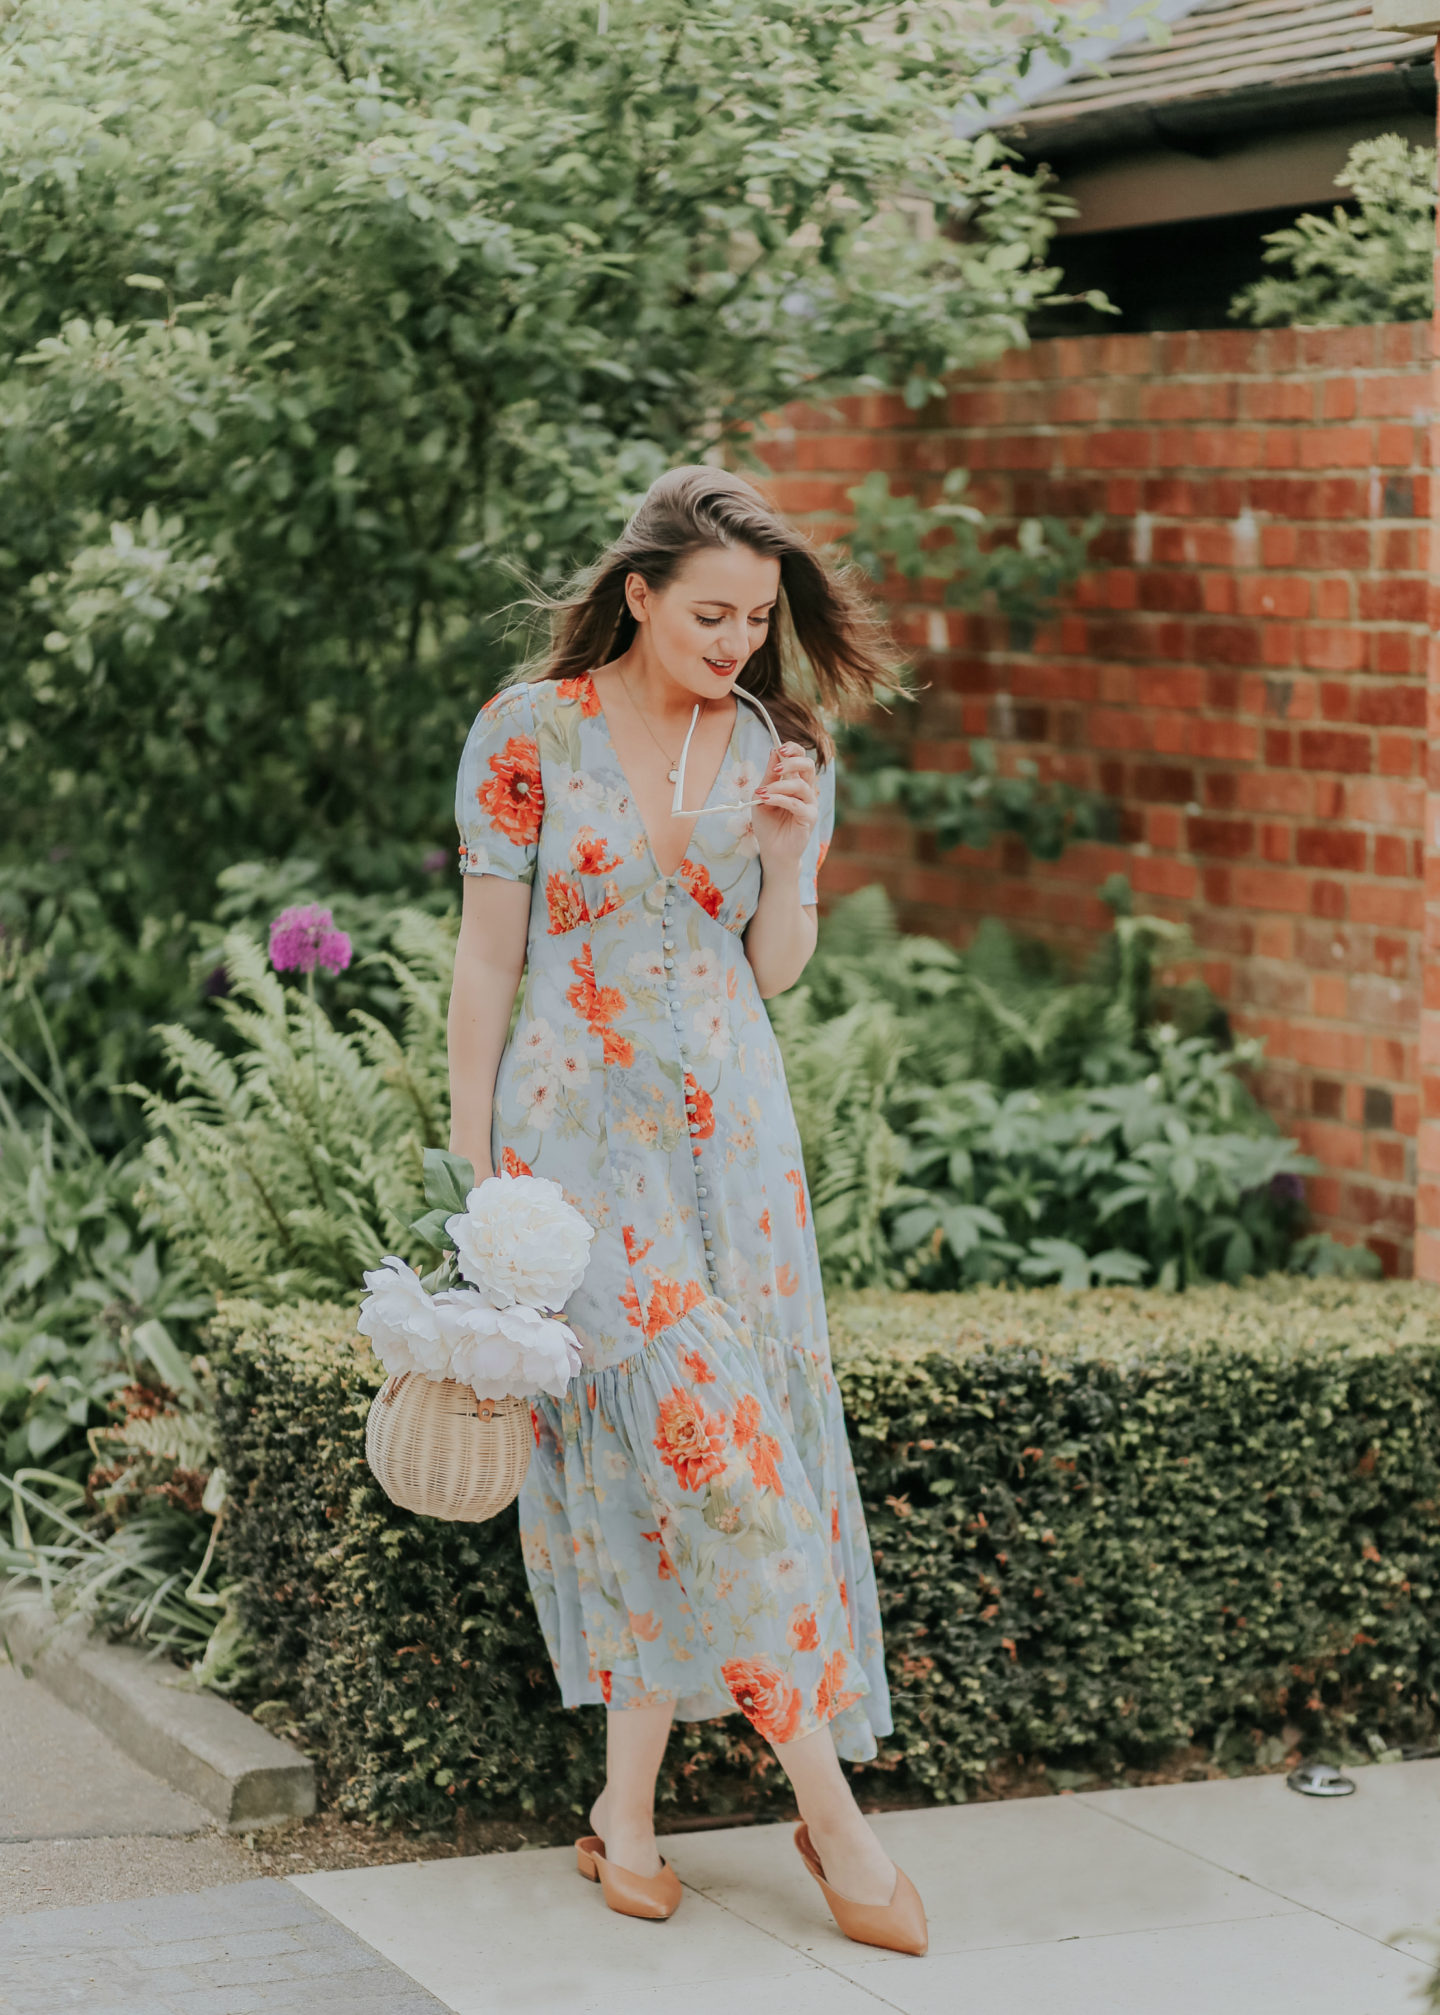 Maxi dress - this season's best buys - Launeden